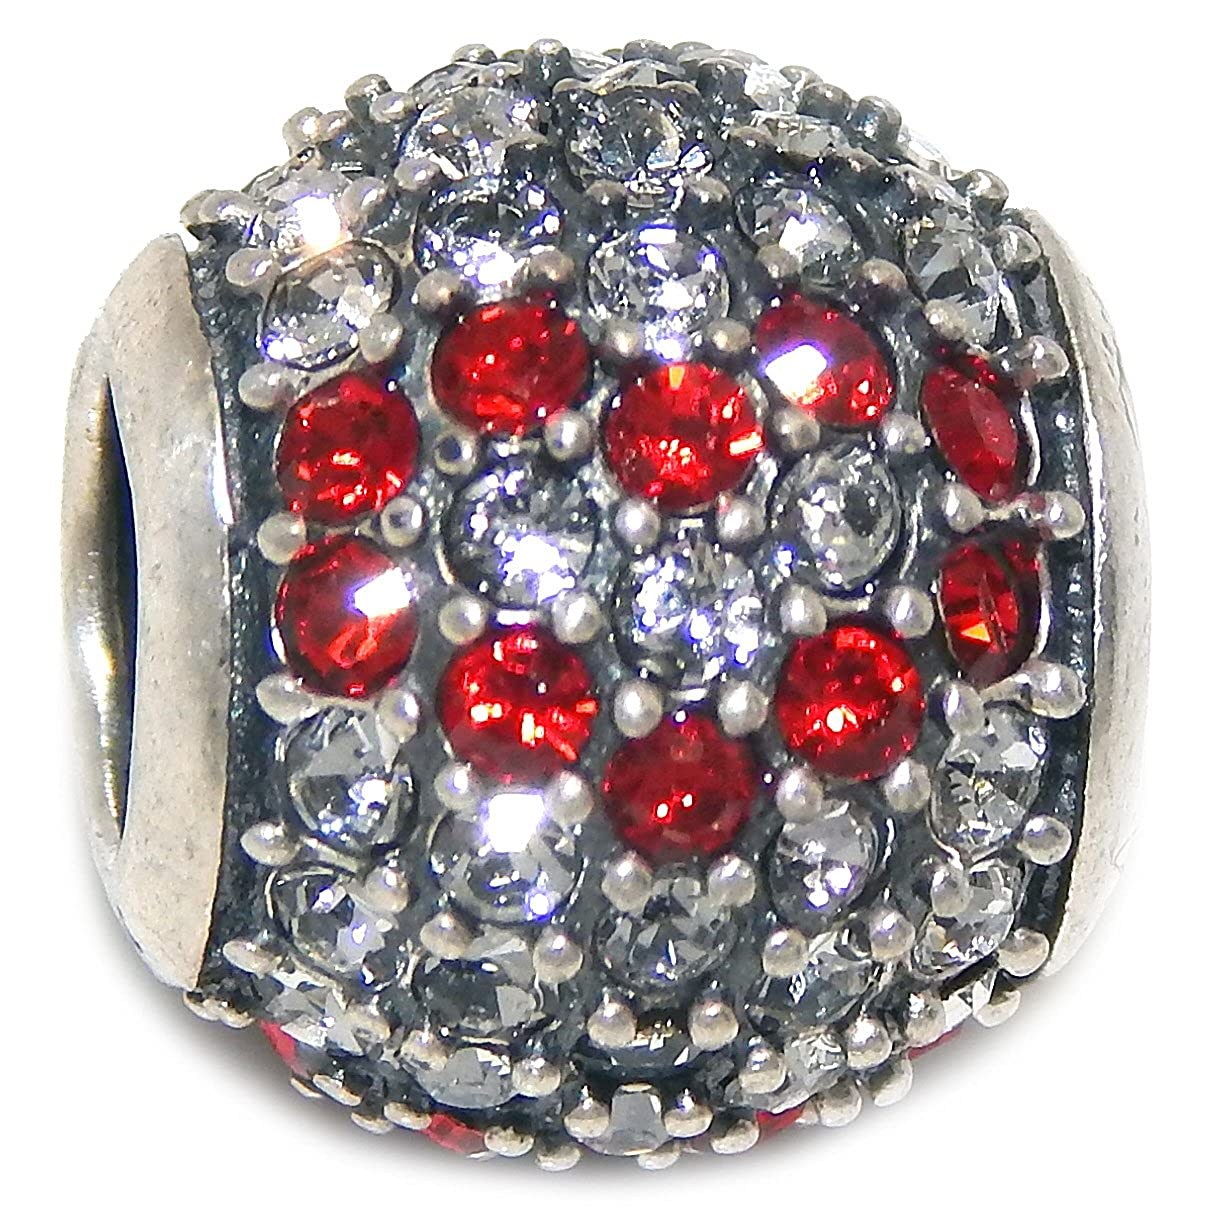 Solid 925 Sterling Silver Round with Clear Crystals and Red Crystal Heart Design Charm Bead